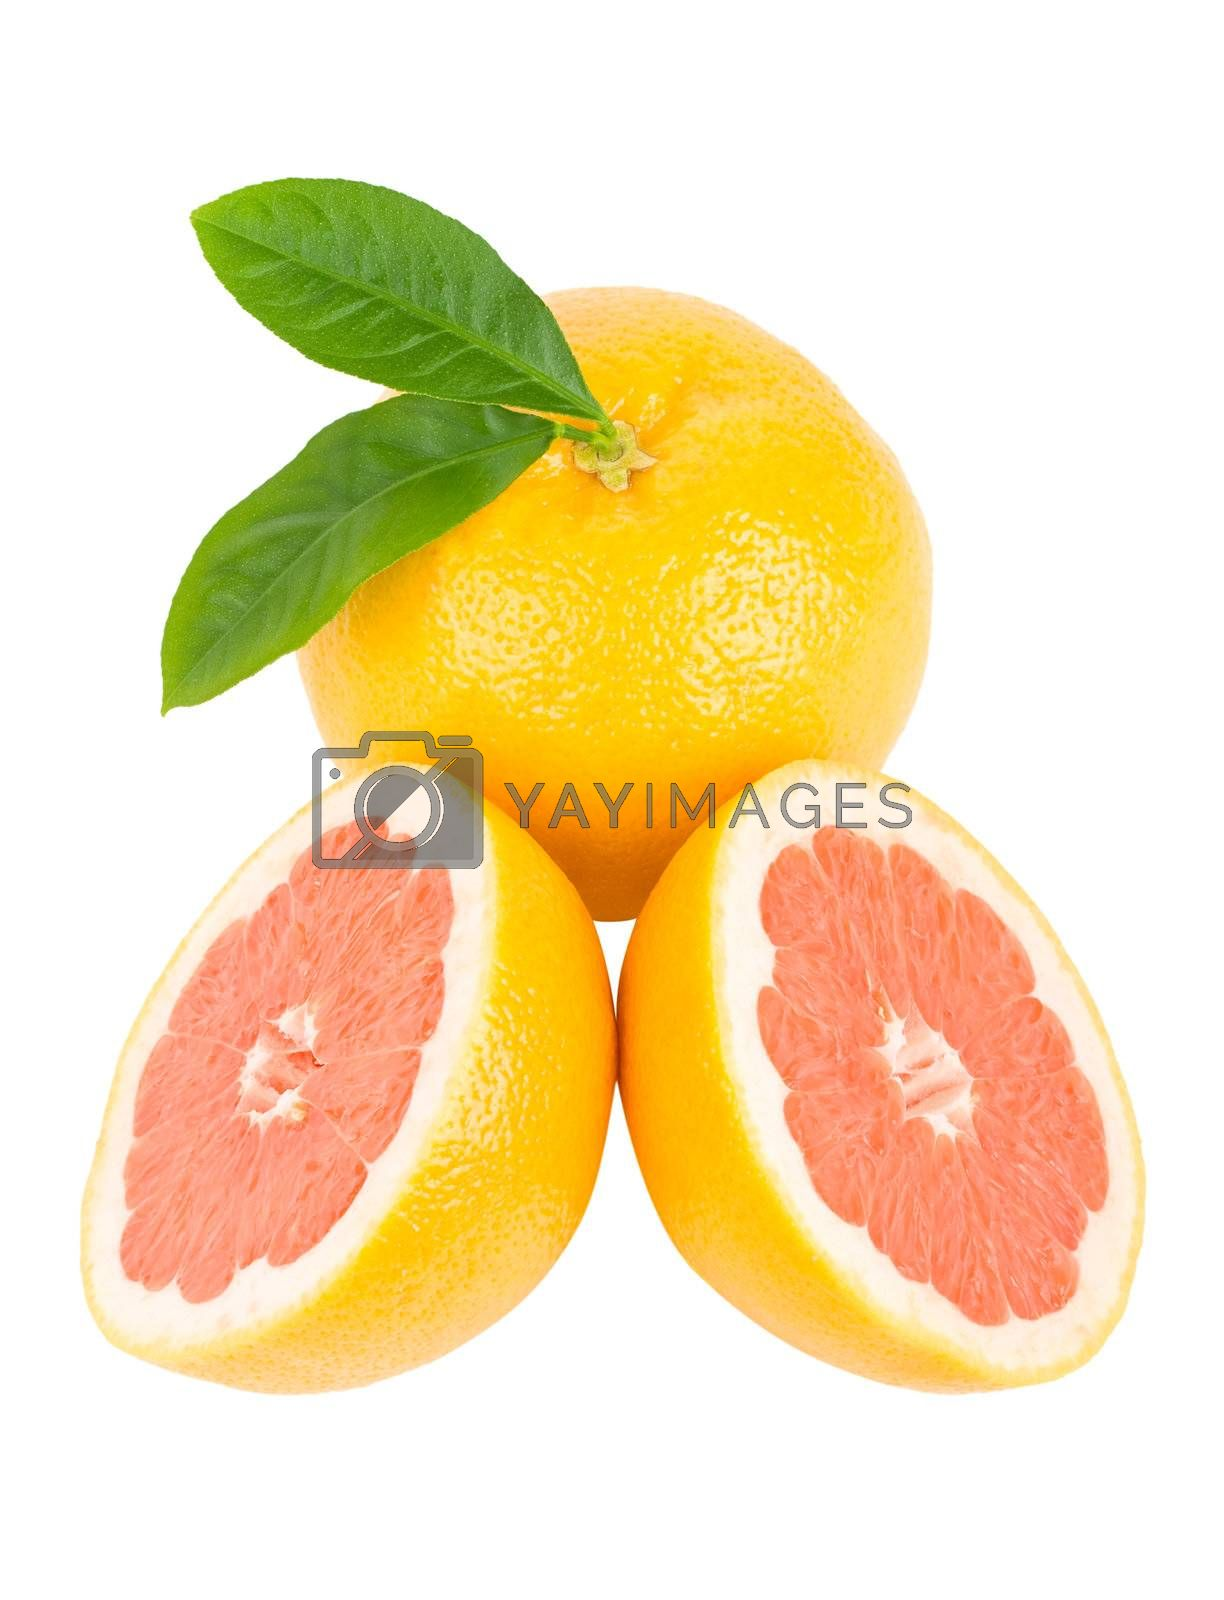 close-up ripe red grapefruits with leaves, isolated on white